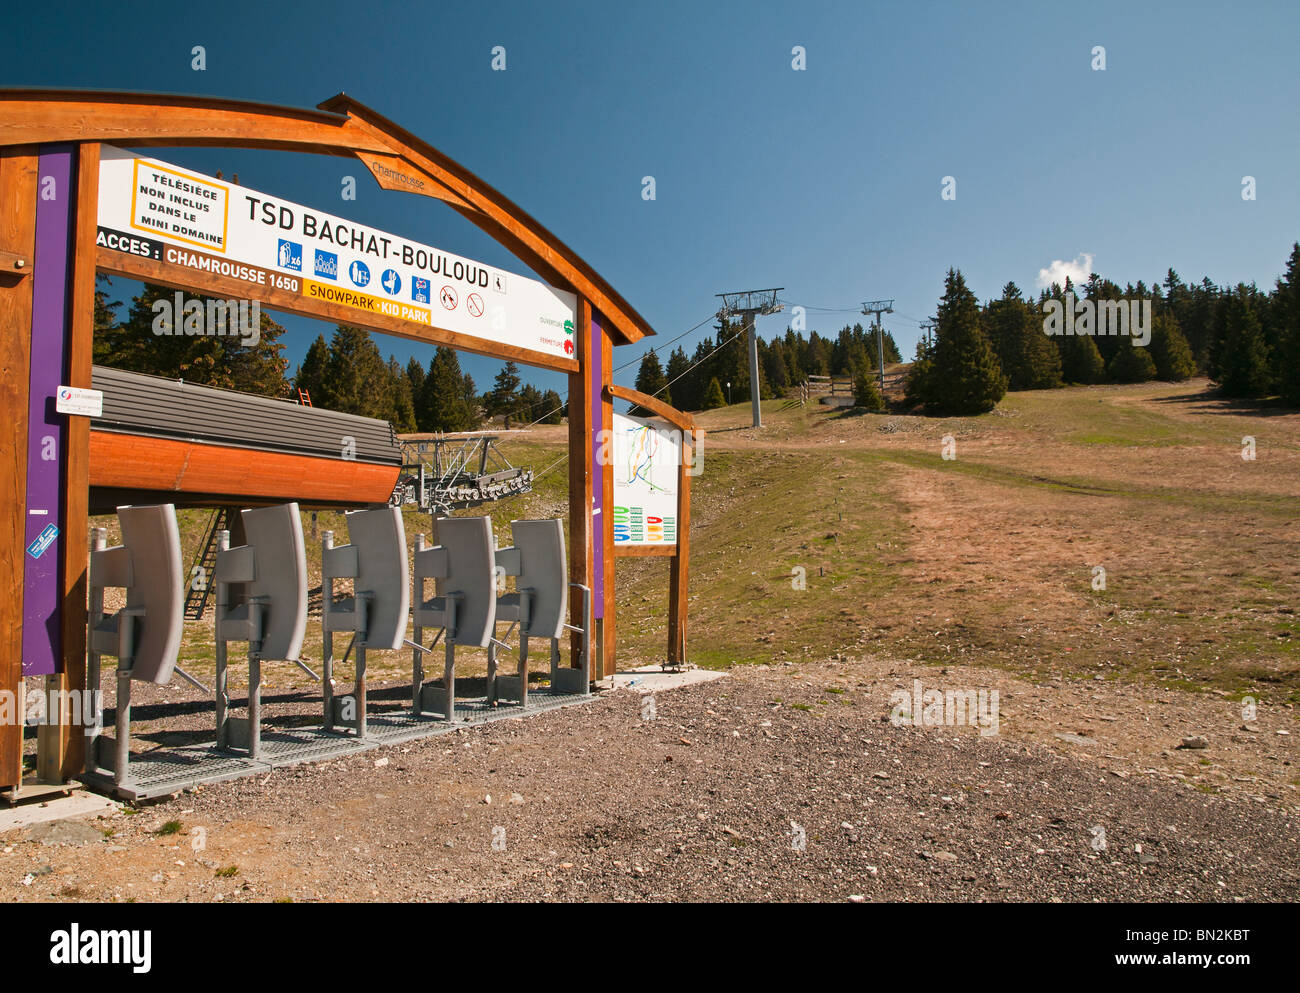 Ski resort in summer, booth tolls at boarding station of a chairlift, Chanrousse, France. - Stock Image